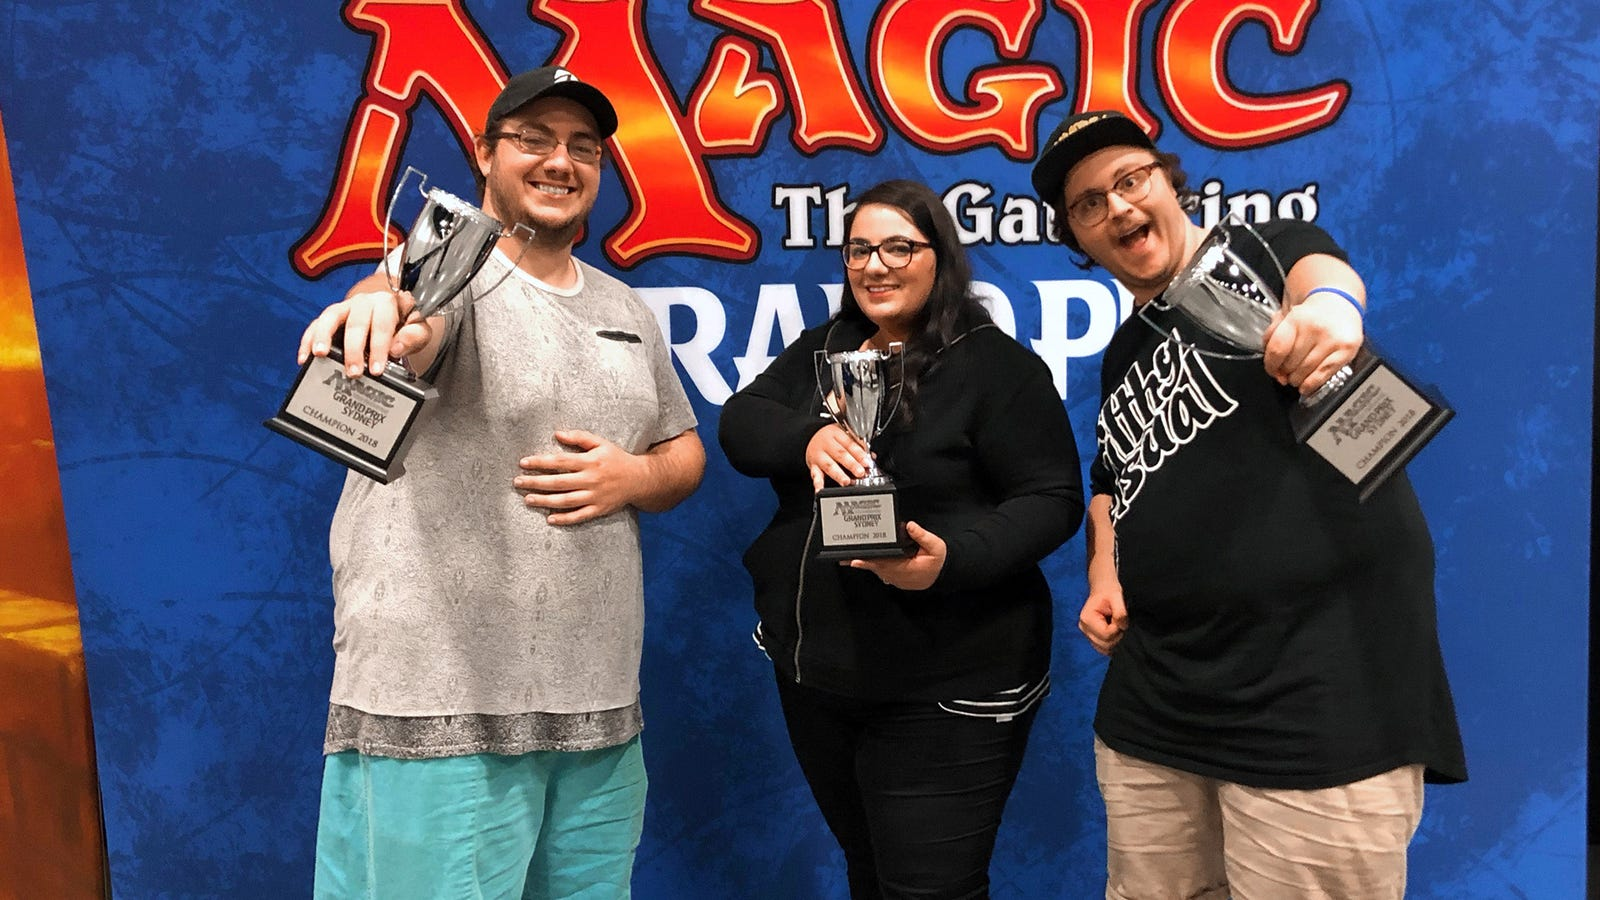 Jessica Estephan Becomes First Woman To Win A Magic: The Gathering Grand Prix